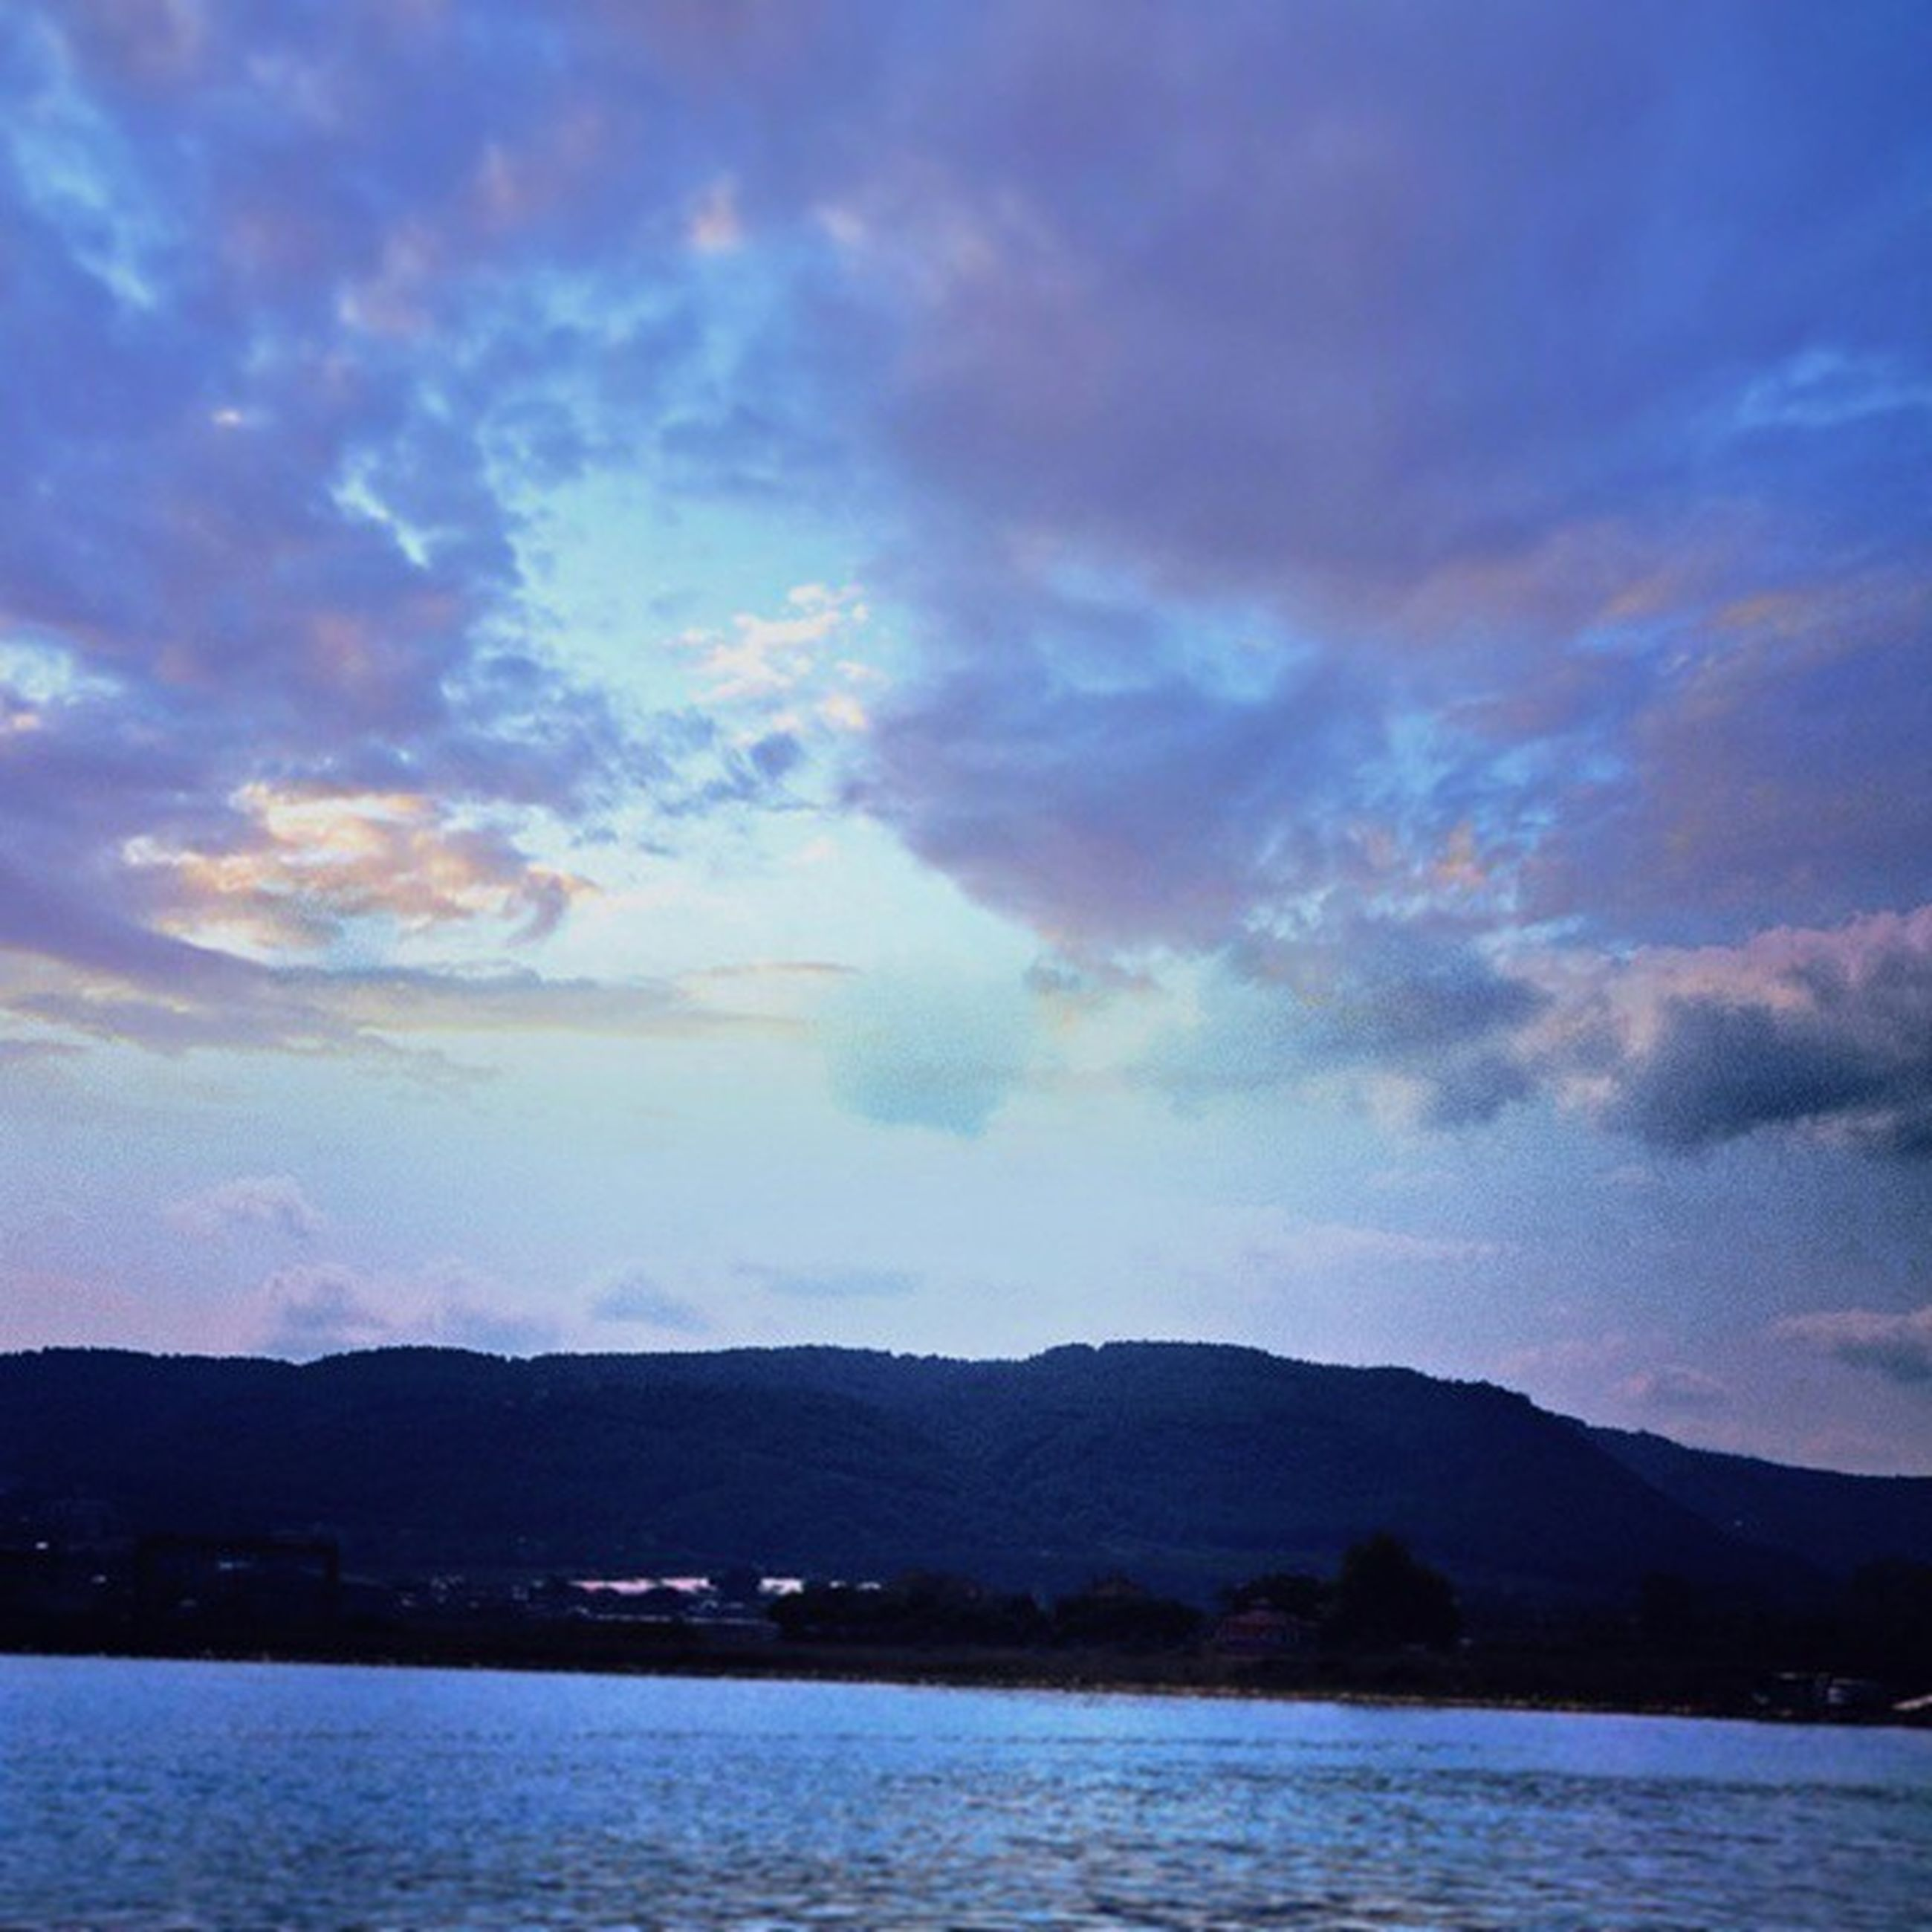 water, mountain, sky, tranquil scene, waterfront, scenics, mountain range, tranquility, beauty in nature, cloud - sky, lake, sea, nature, cloud, cloudy, idyllic, silhouette, dusk, river, non-urban scene